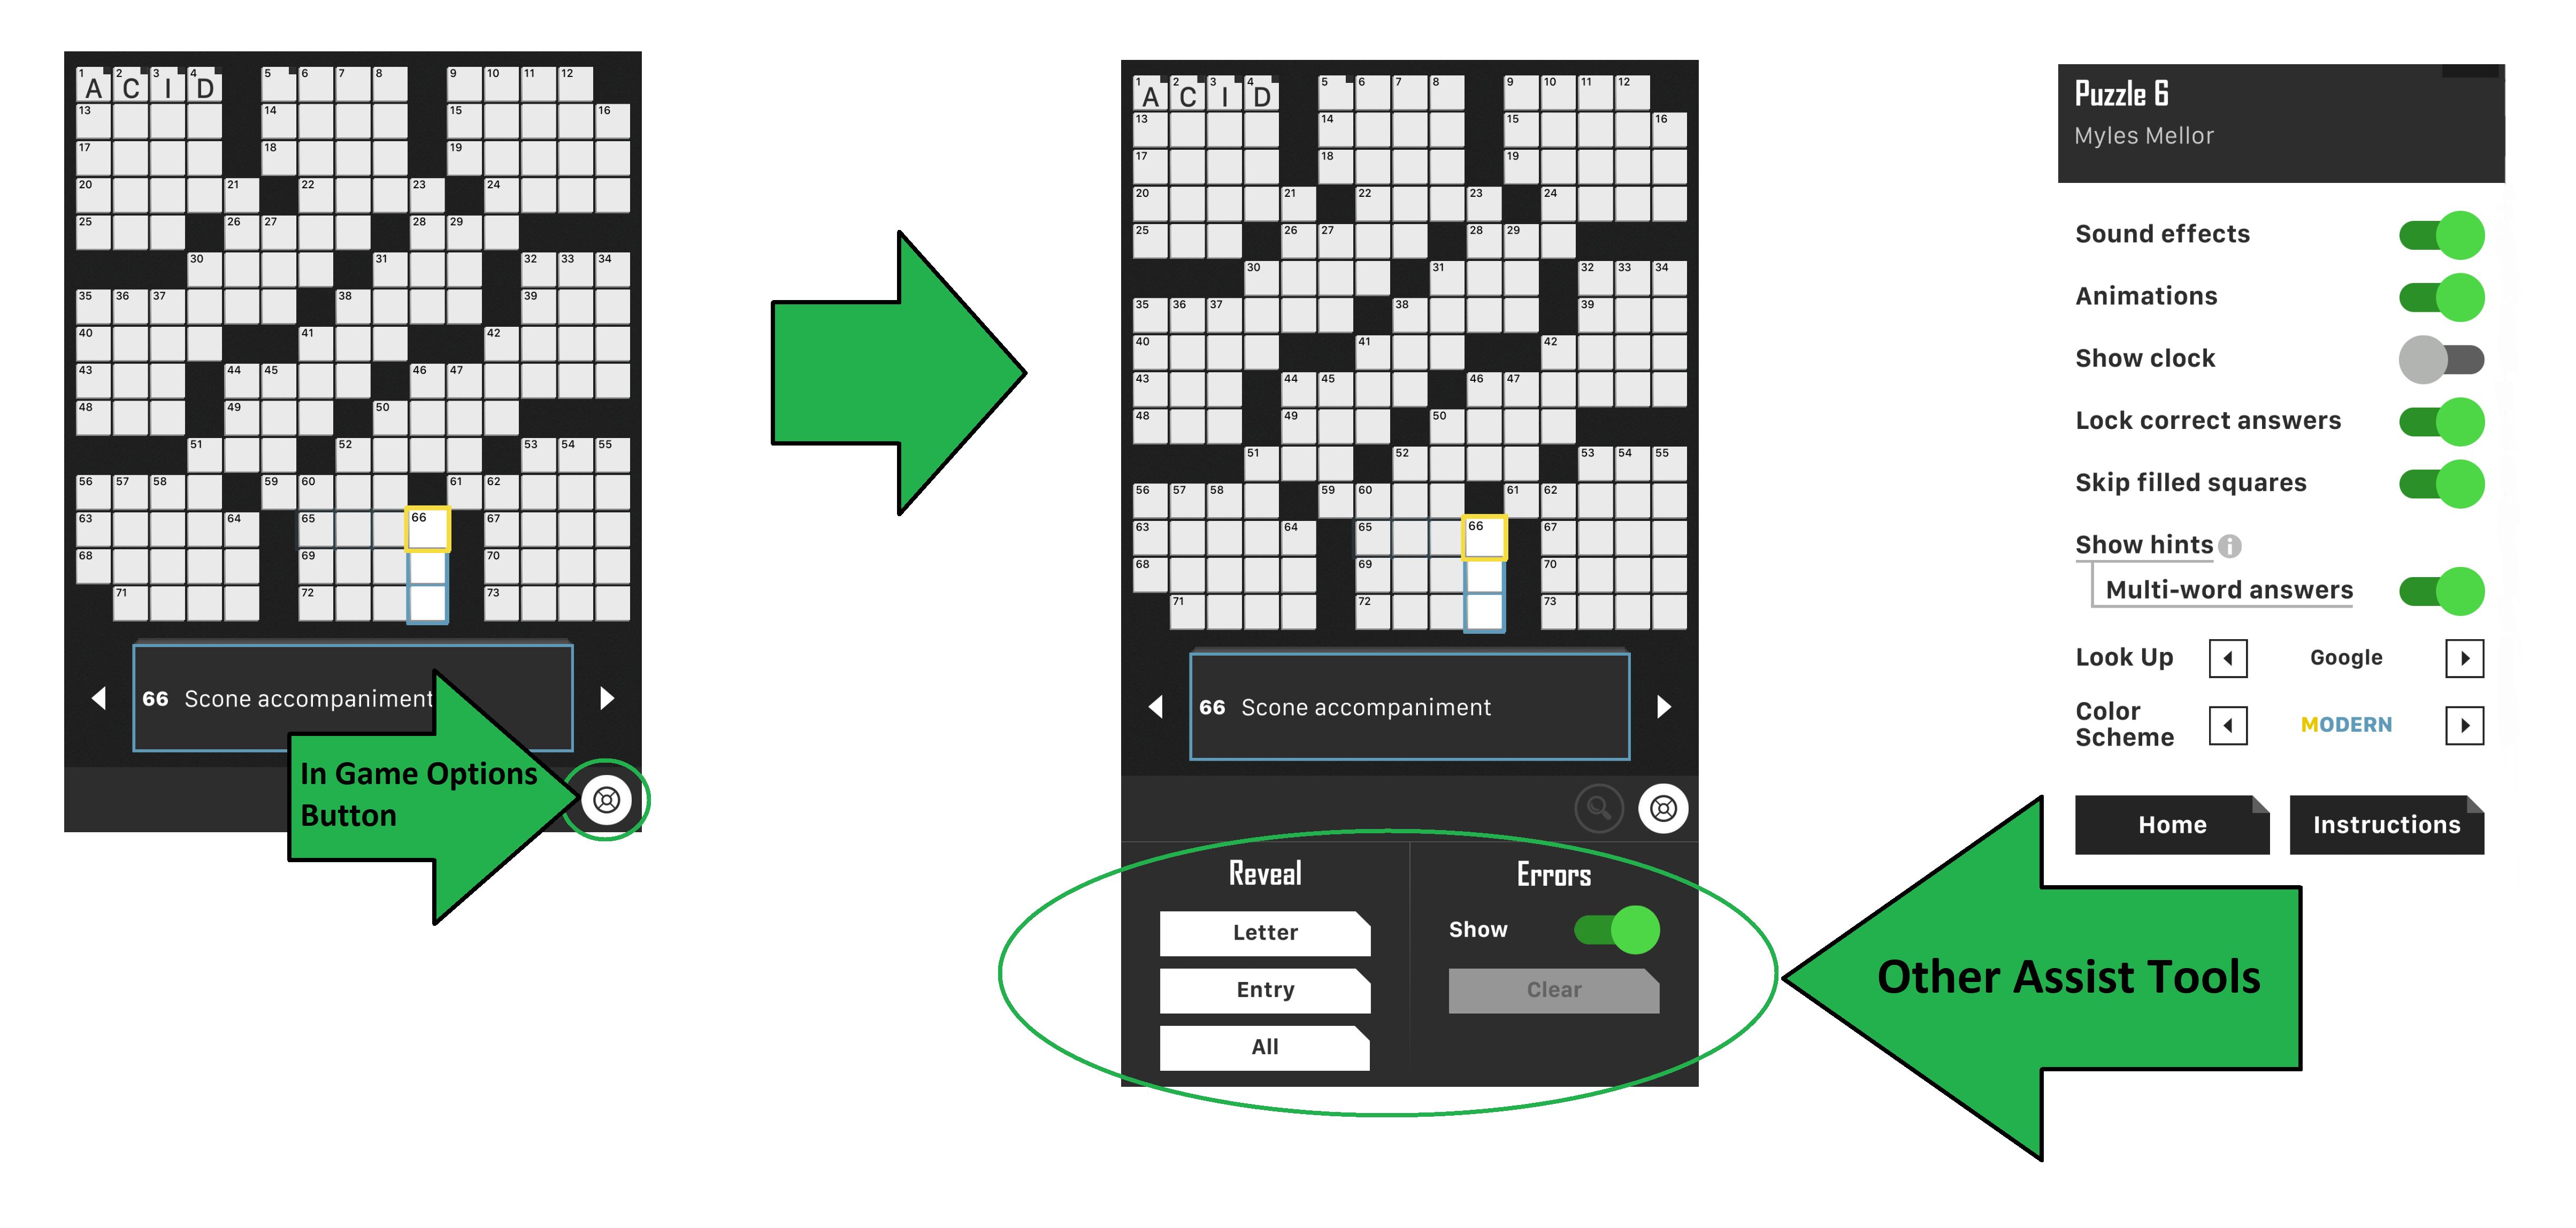 Crossword puzzle 3 interfaces to play